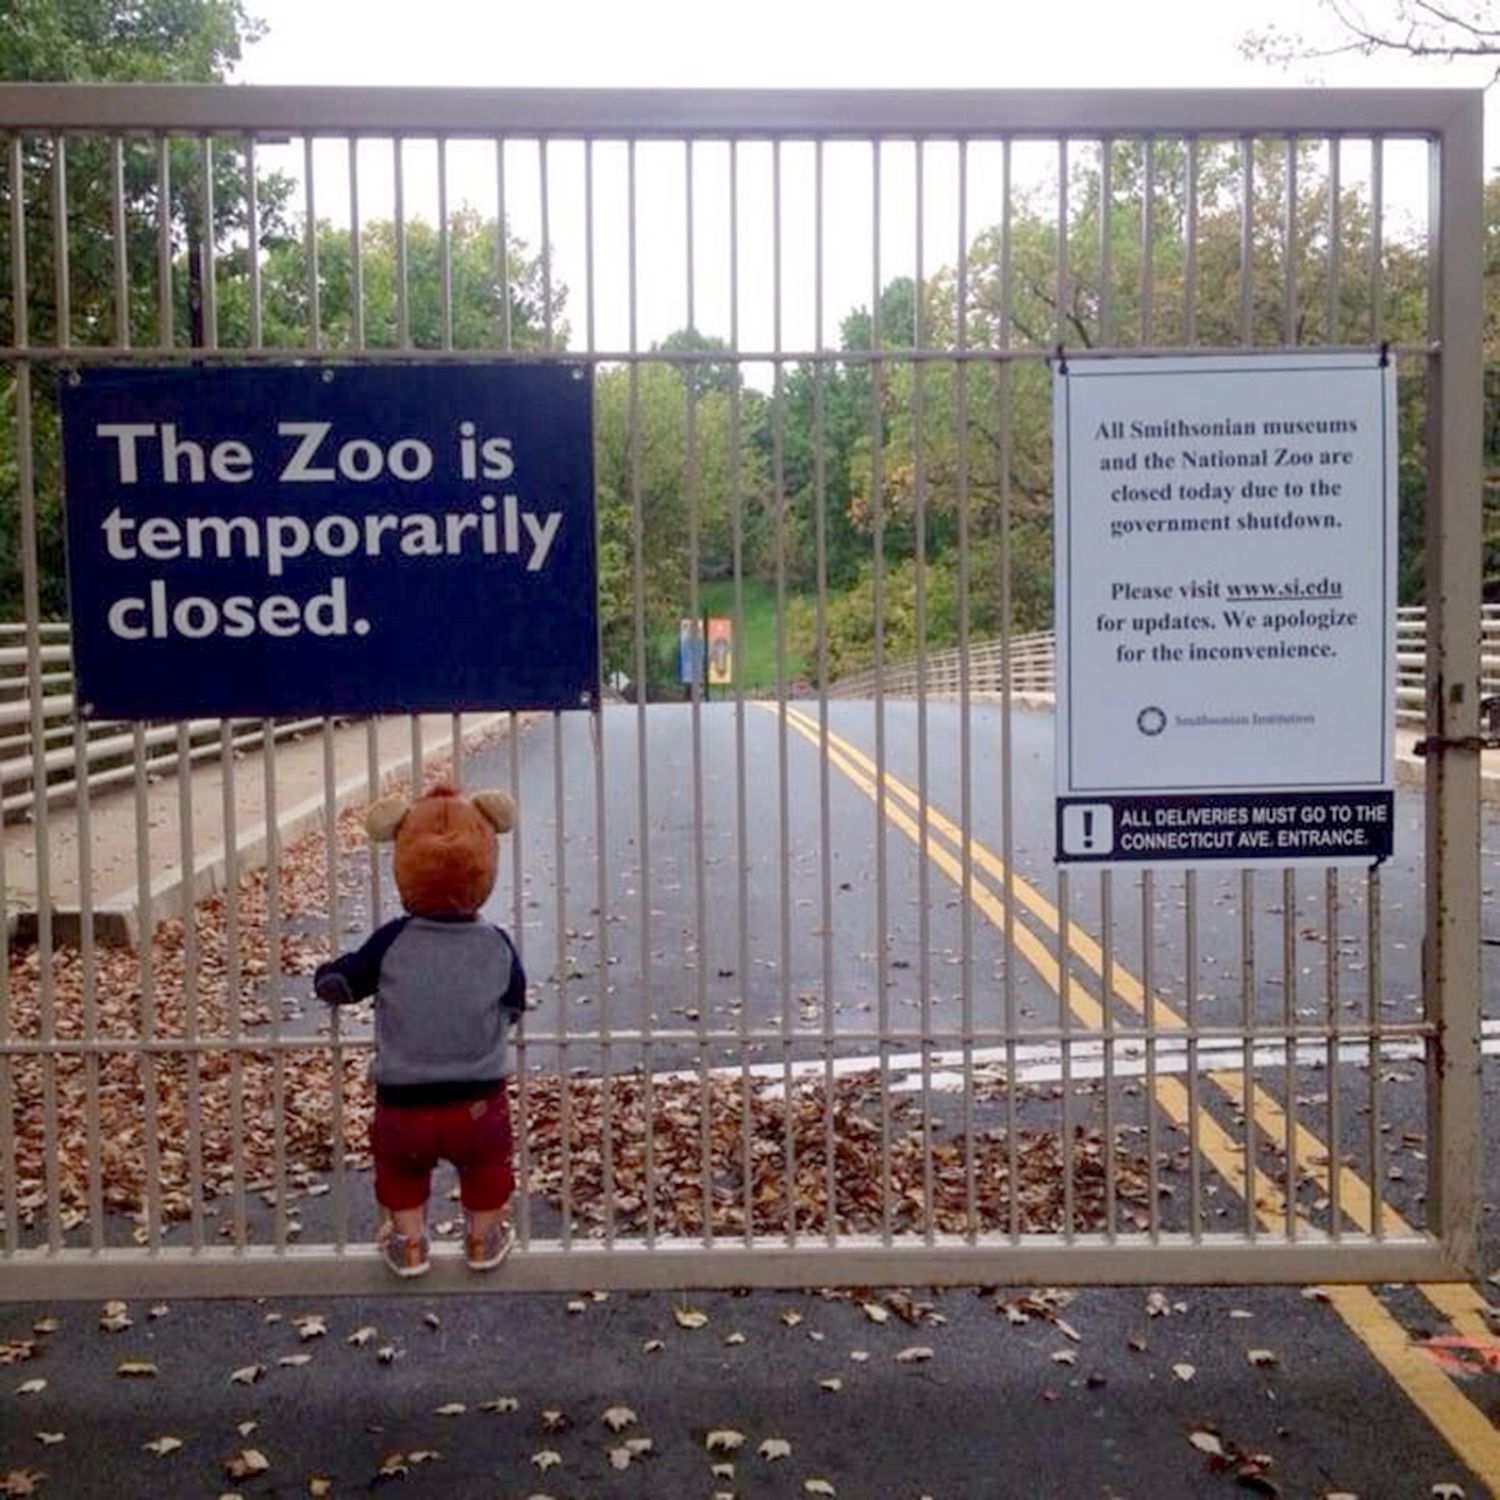 Today Viral News Home: Government Shutdown's 'saddest Photo' Goes Viral